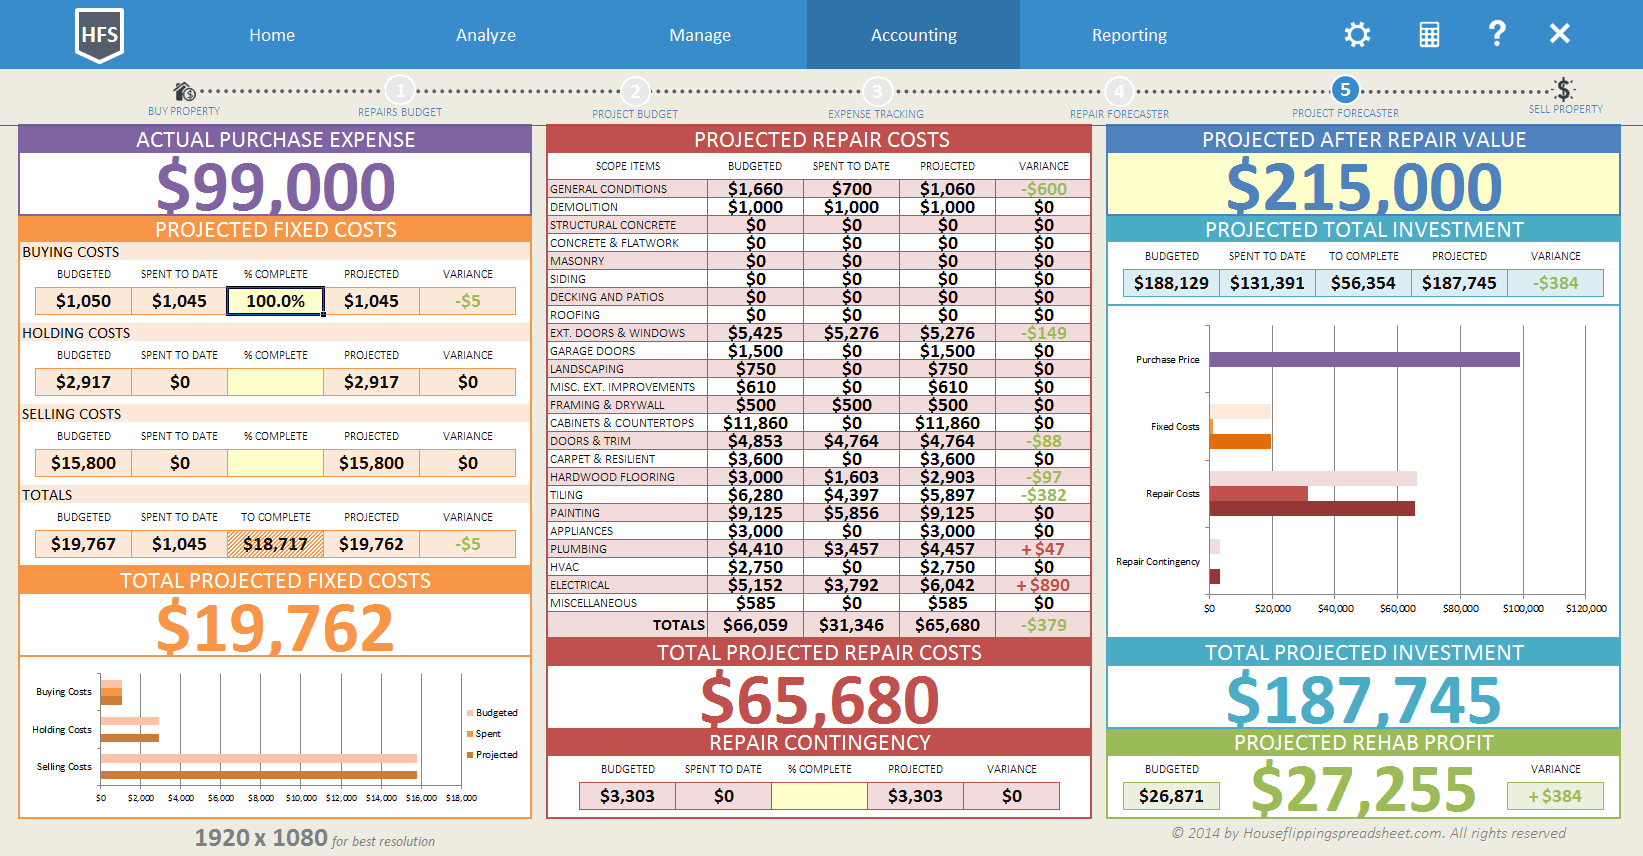 House flipping spreadsheet download for Home building cost spreadsheet